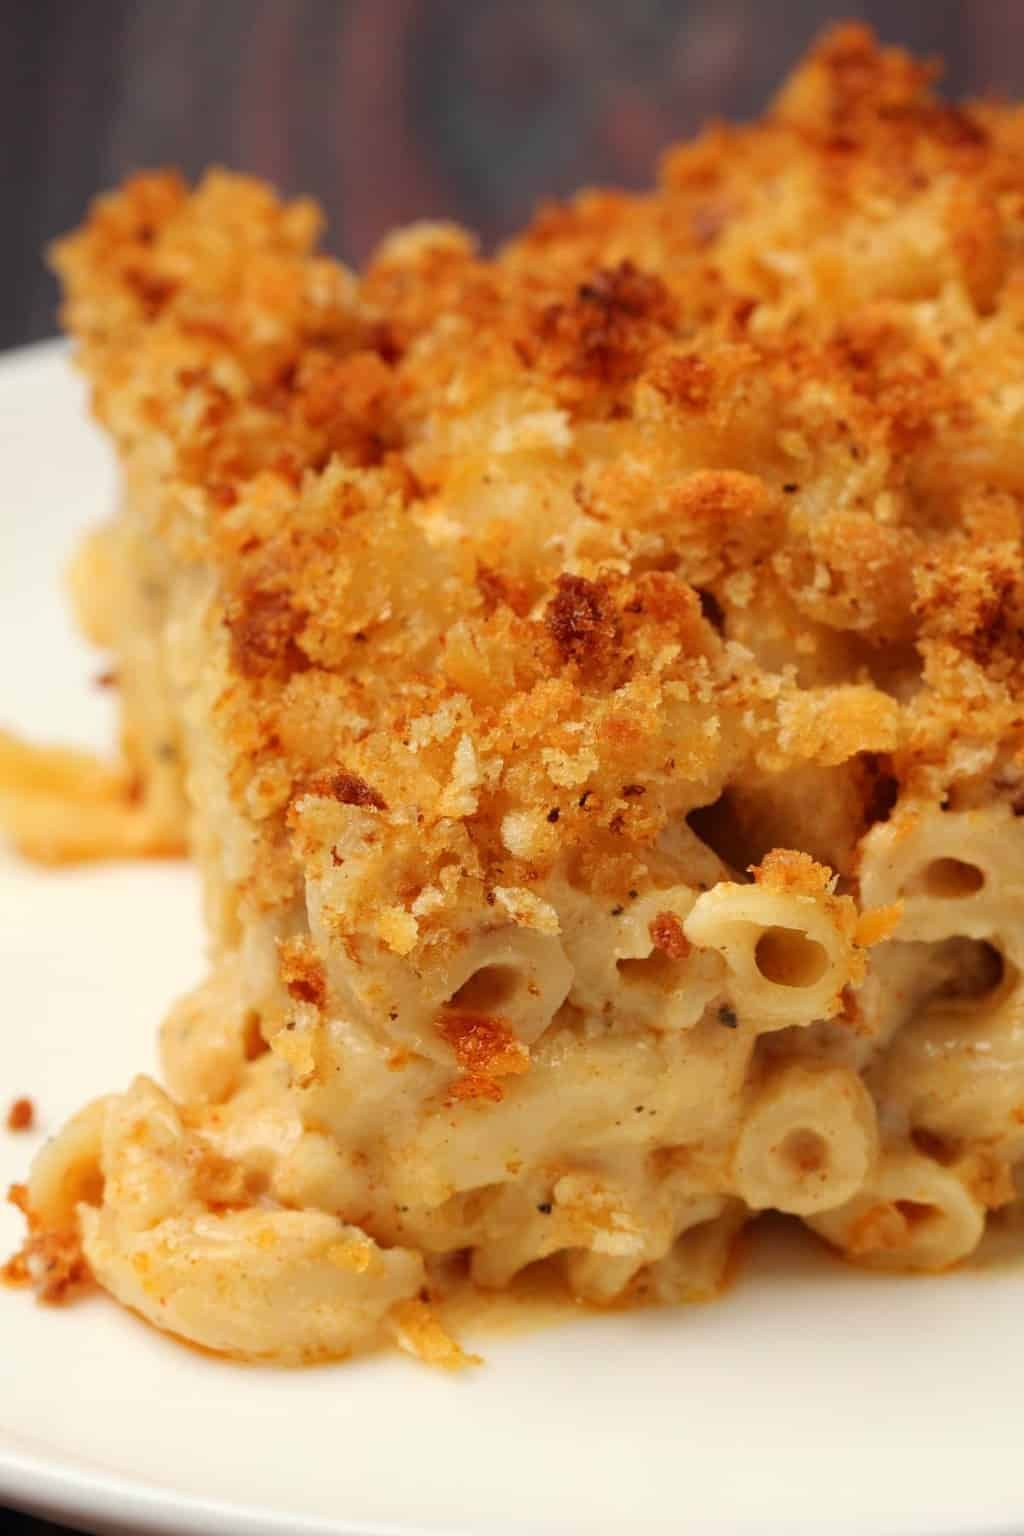 This Classic Vegan Mac And Cheese Is Ultra Cheesy Saucy And Creamy Topped With Bread Vegan Mac And Cheese Vegetarian Mac And Cheese Dairy Free Mac And Cheese